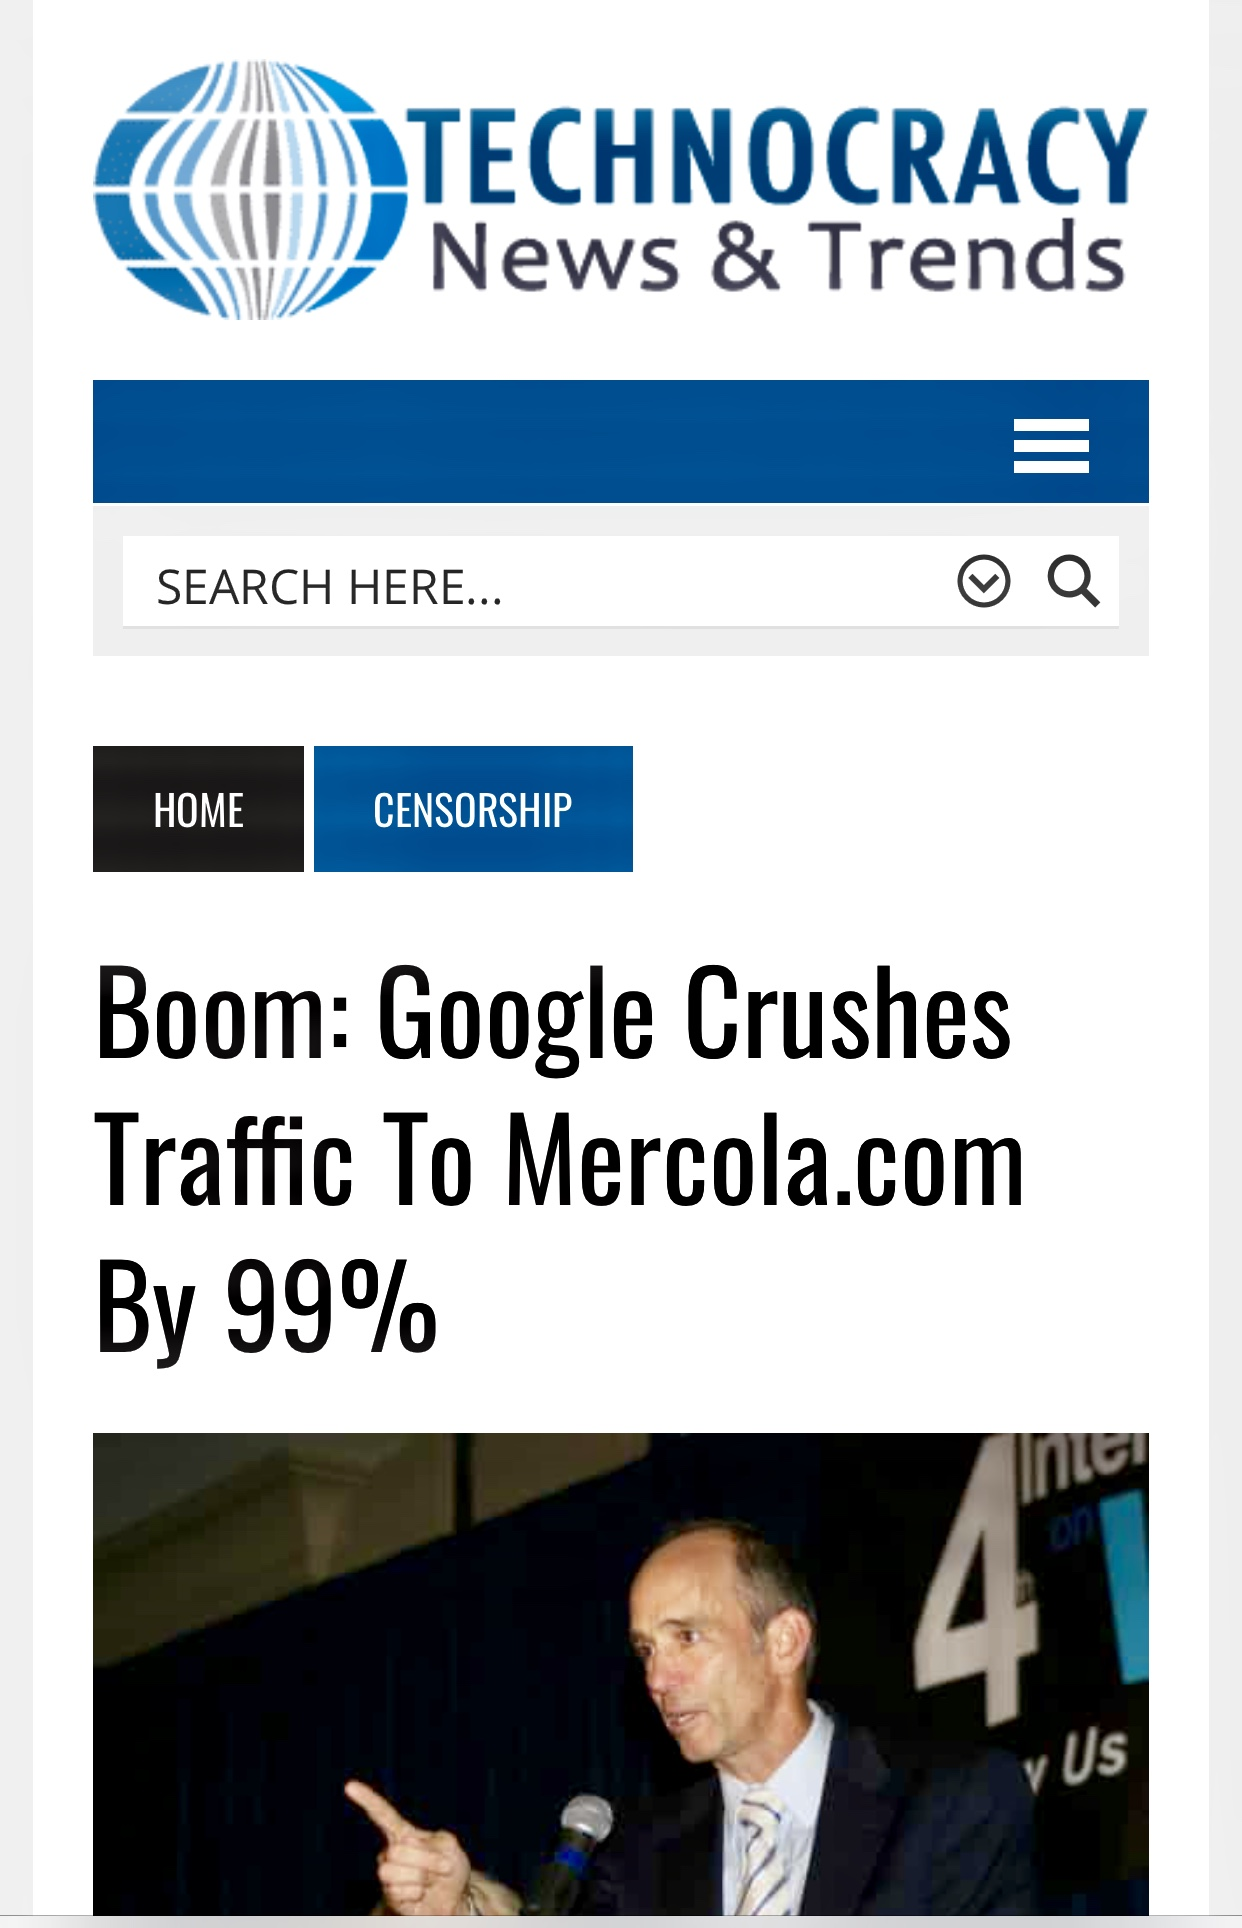 Google Crushes Traffic To Mercola.com By 99%